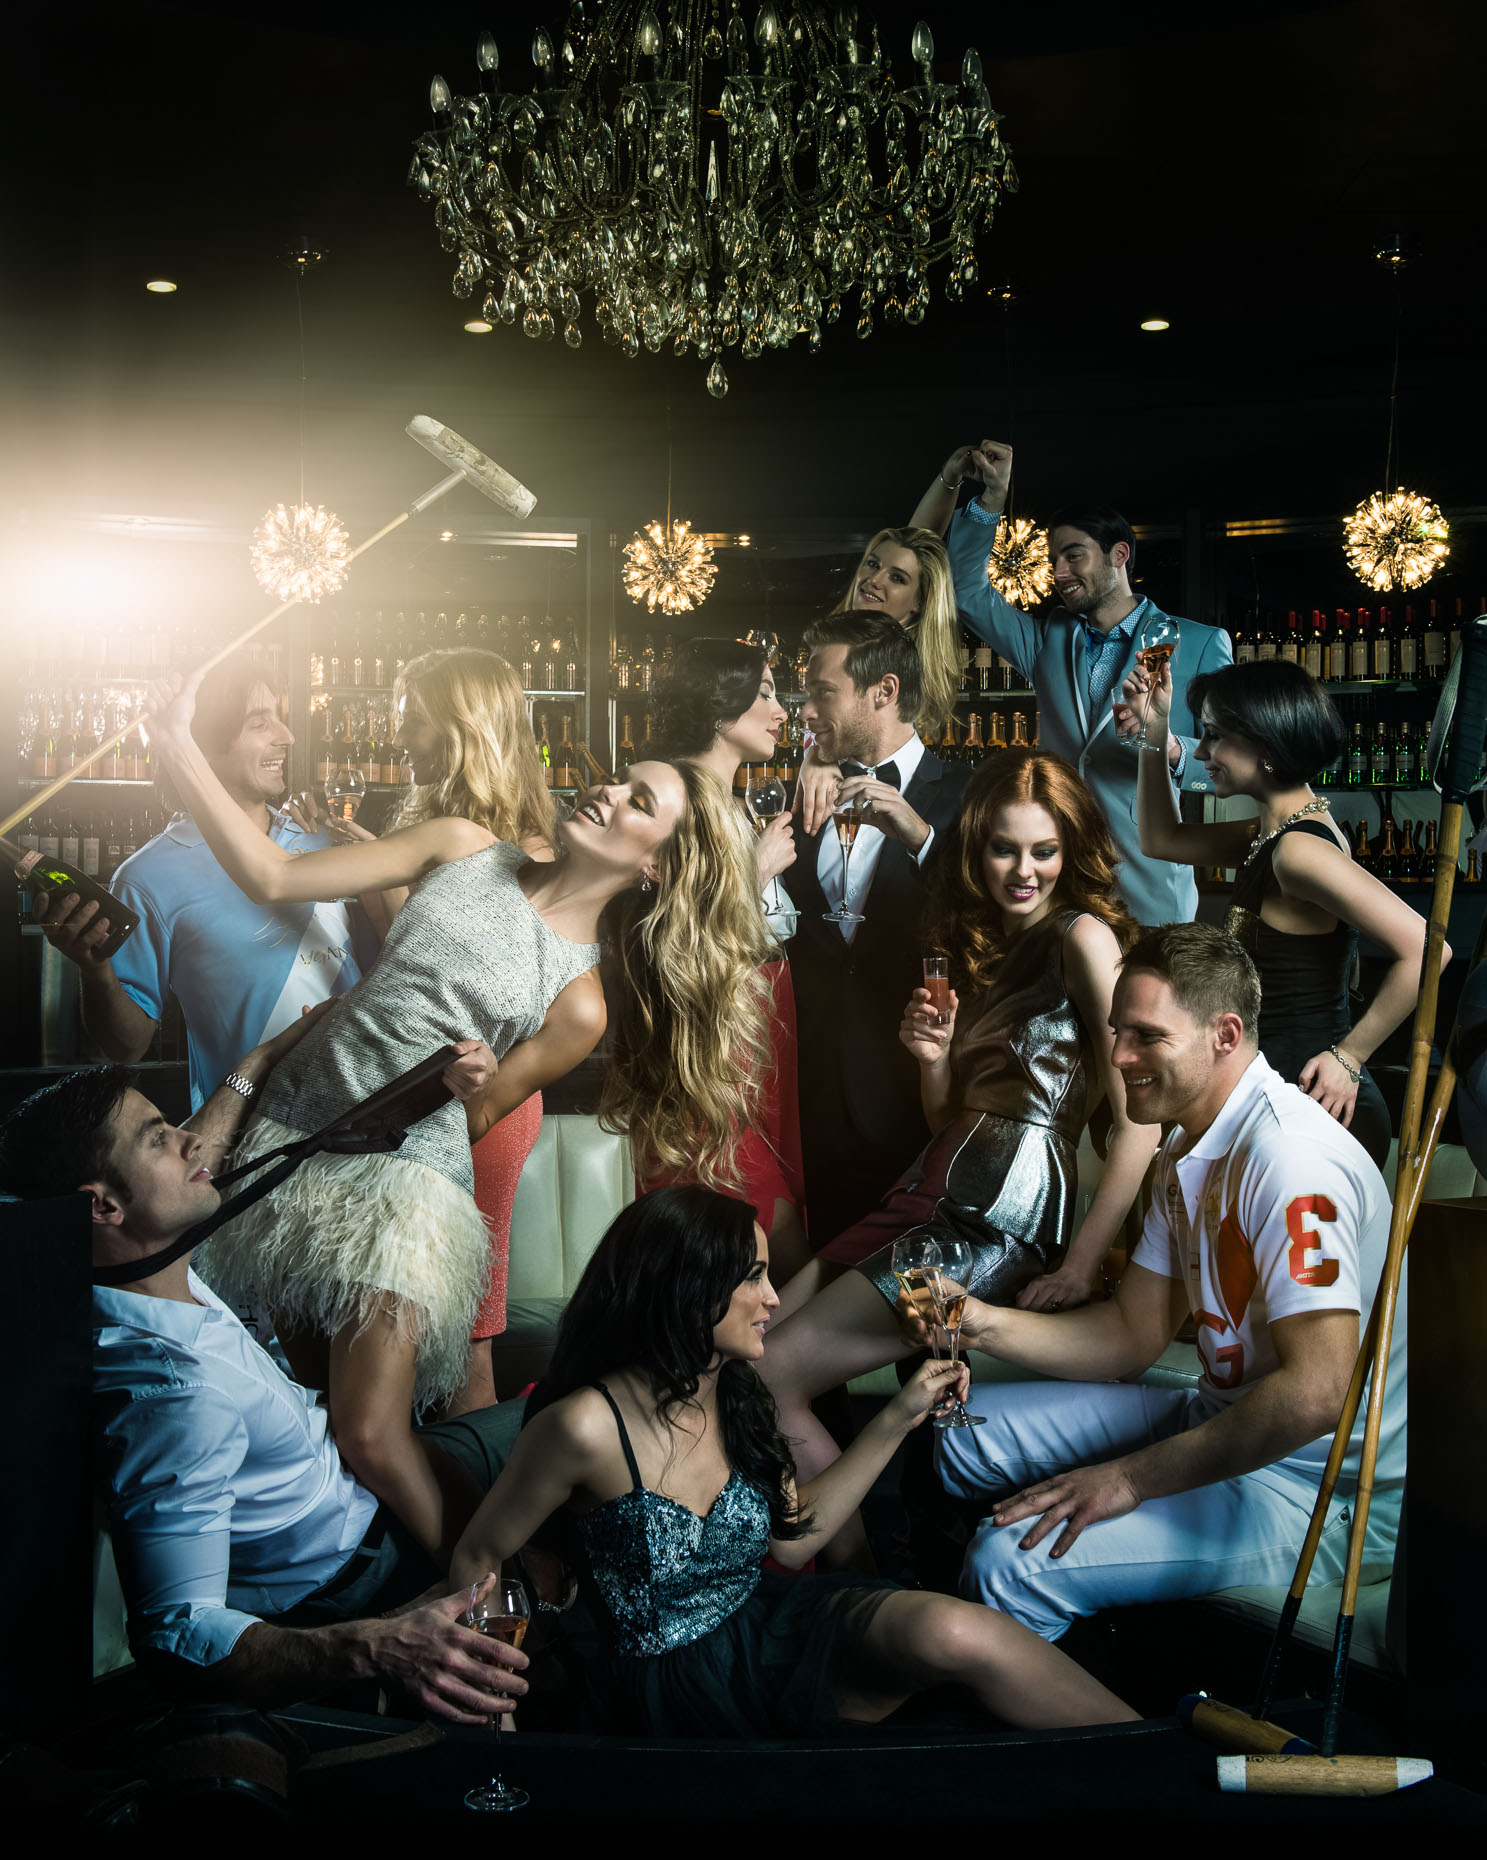 Gaucho-campaign-image-of-polo-party